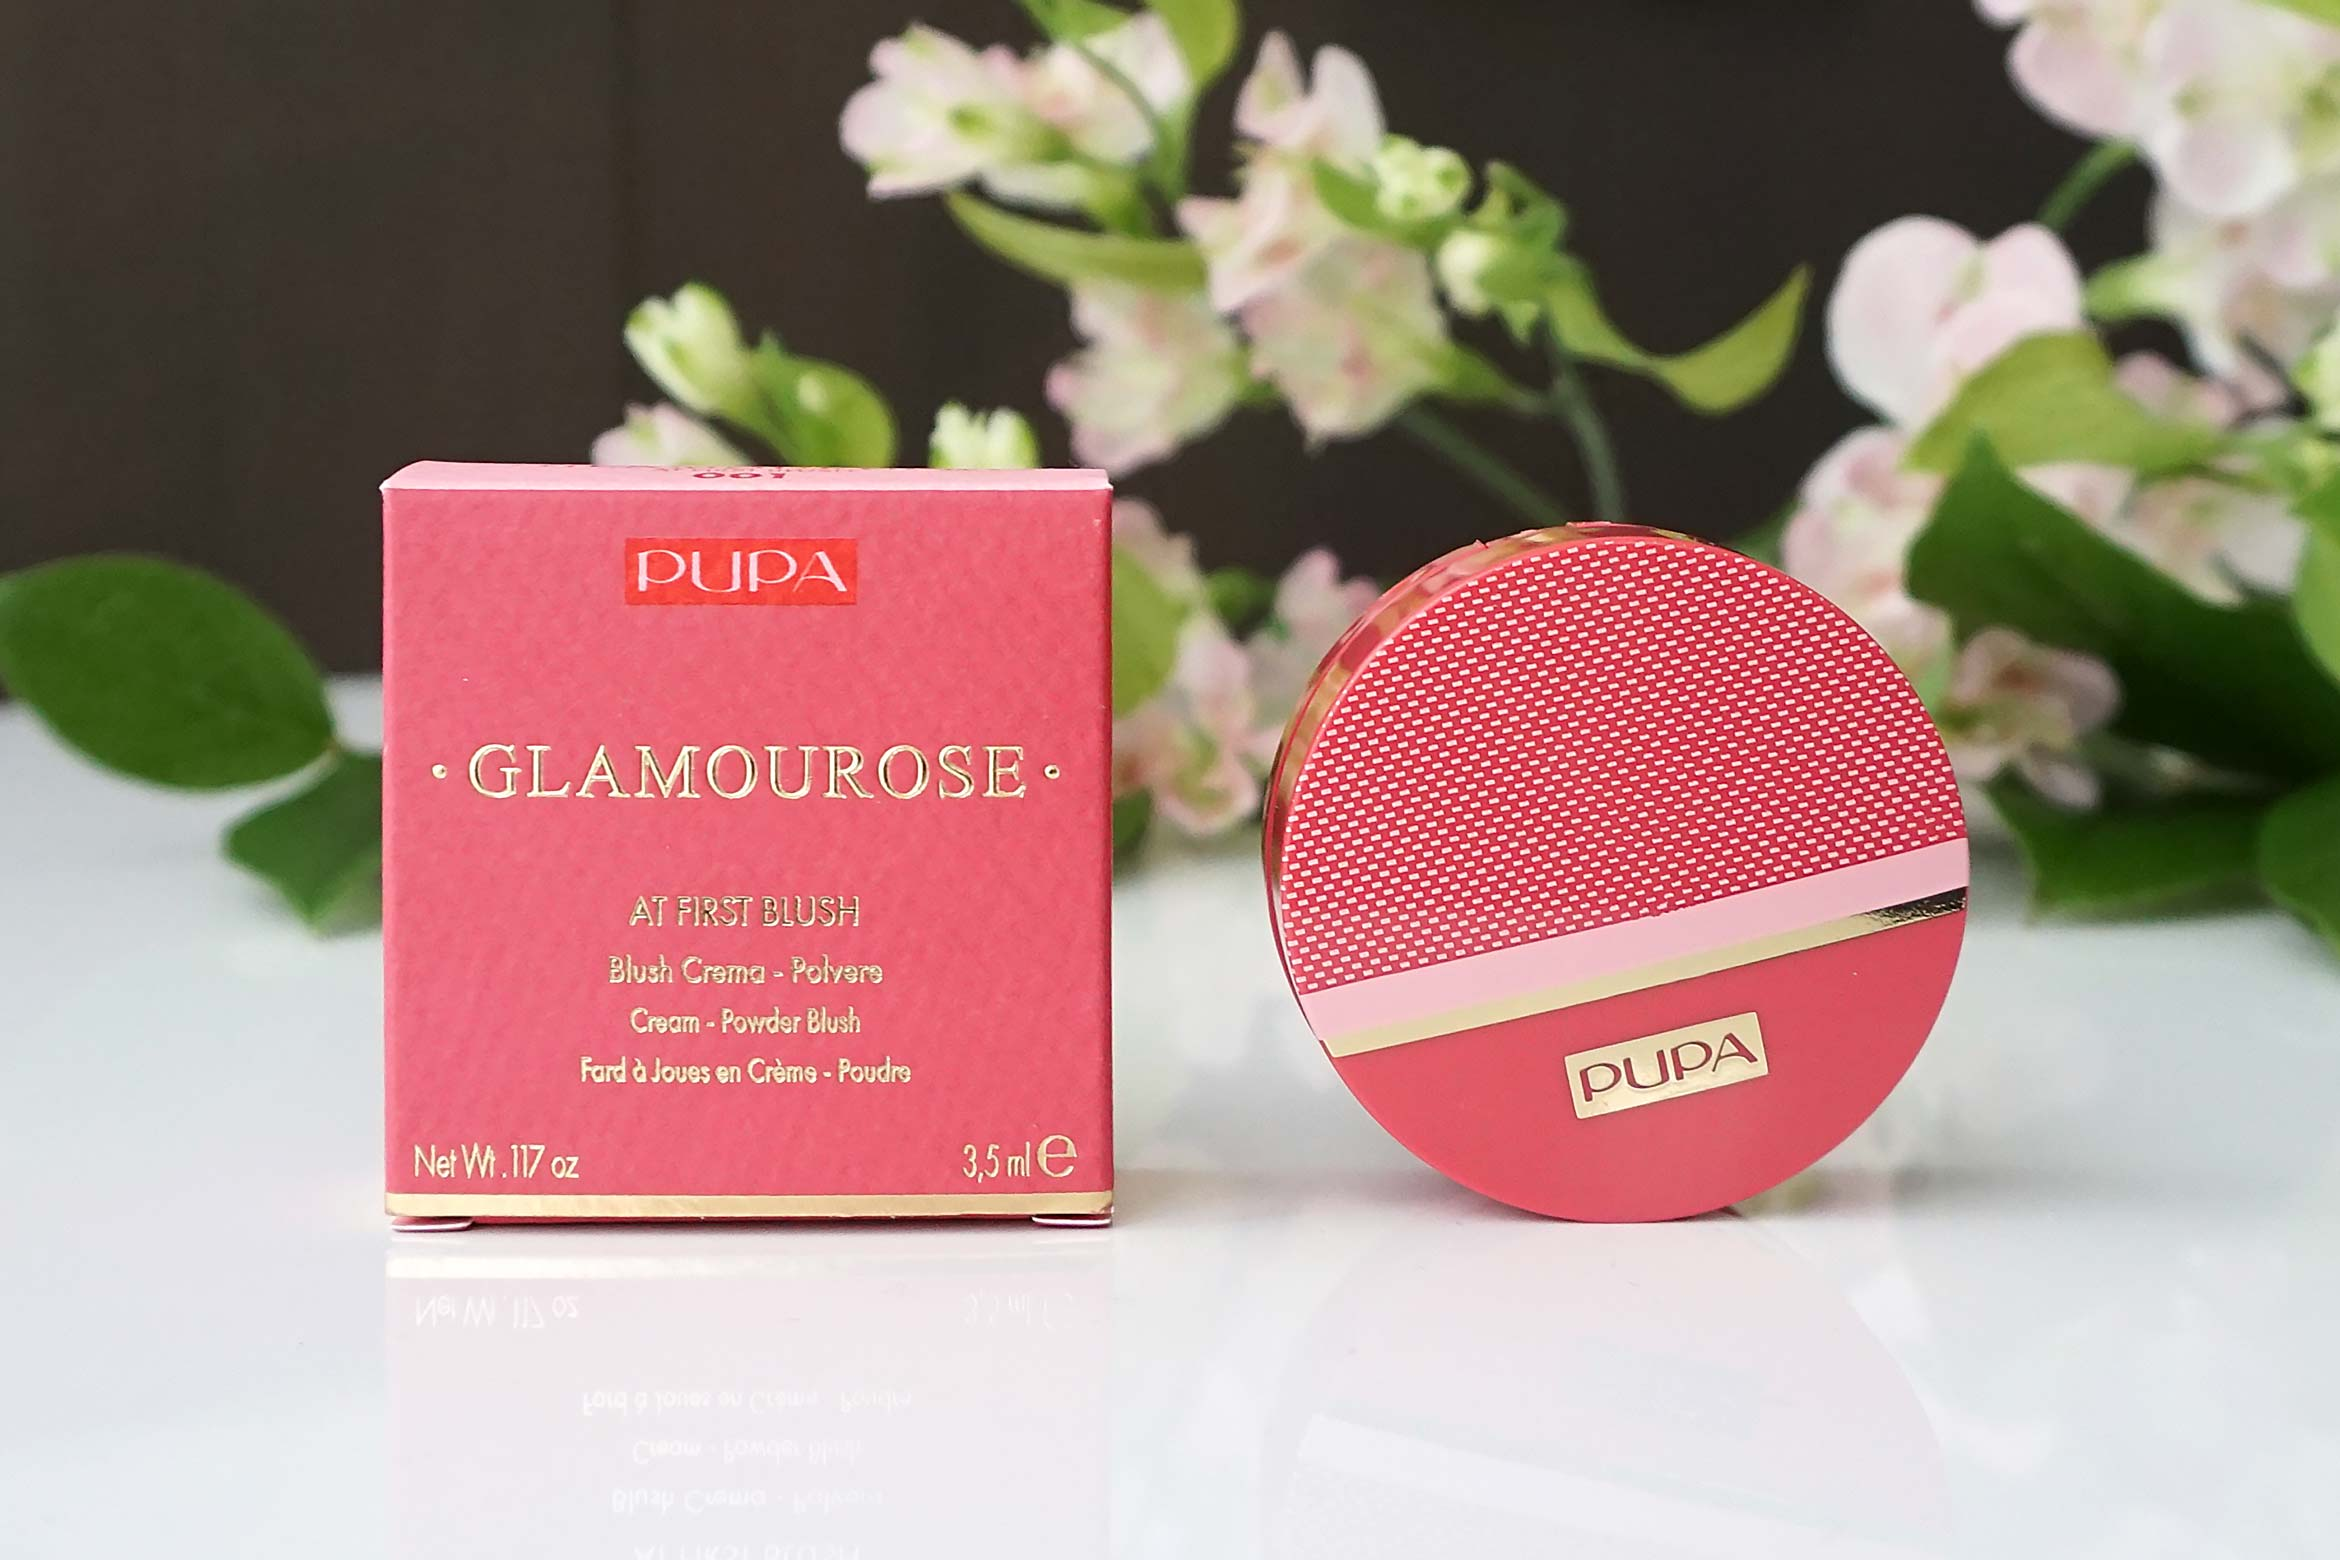 Pupa-Glamourose-at-first-blush-review